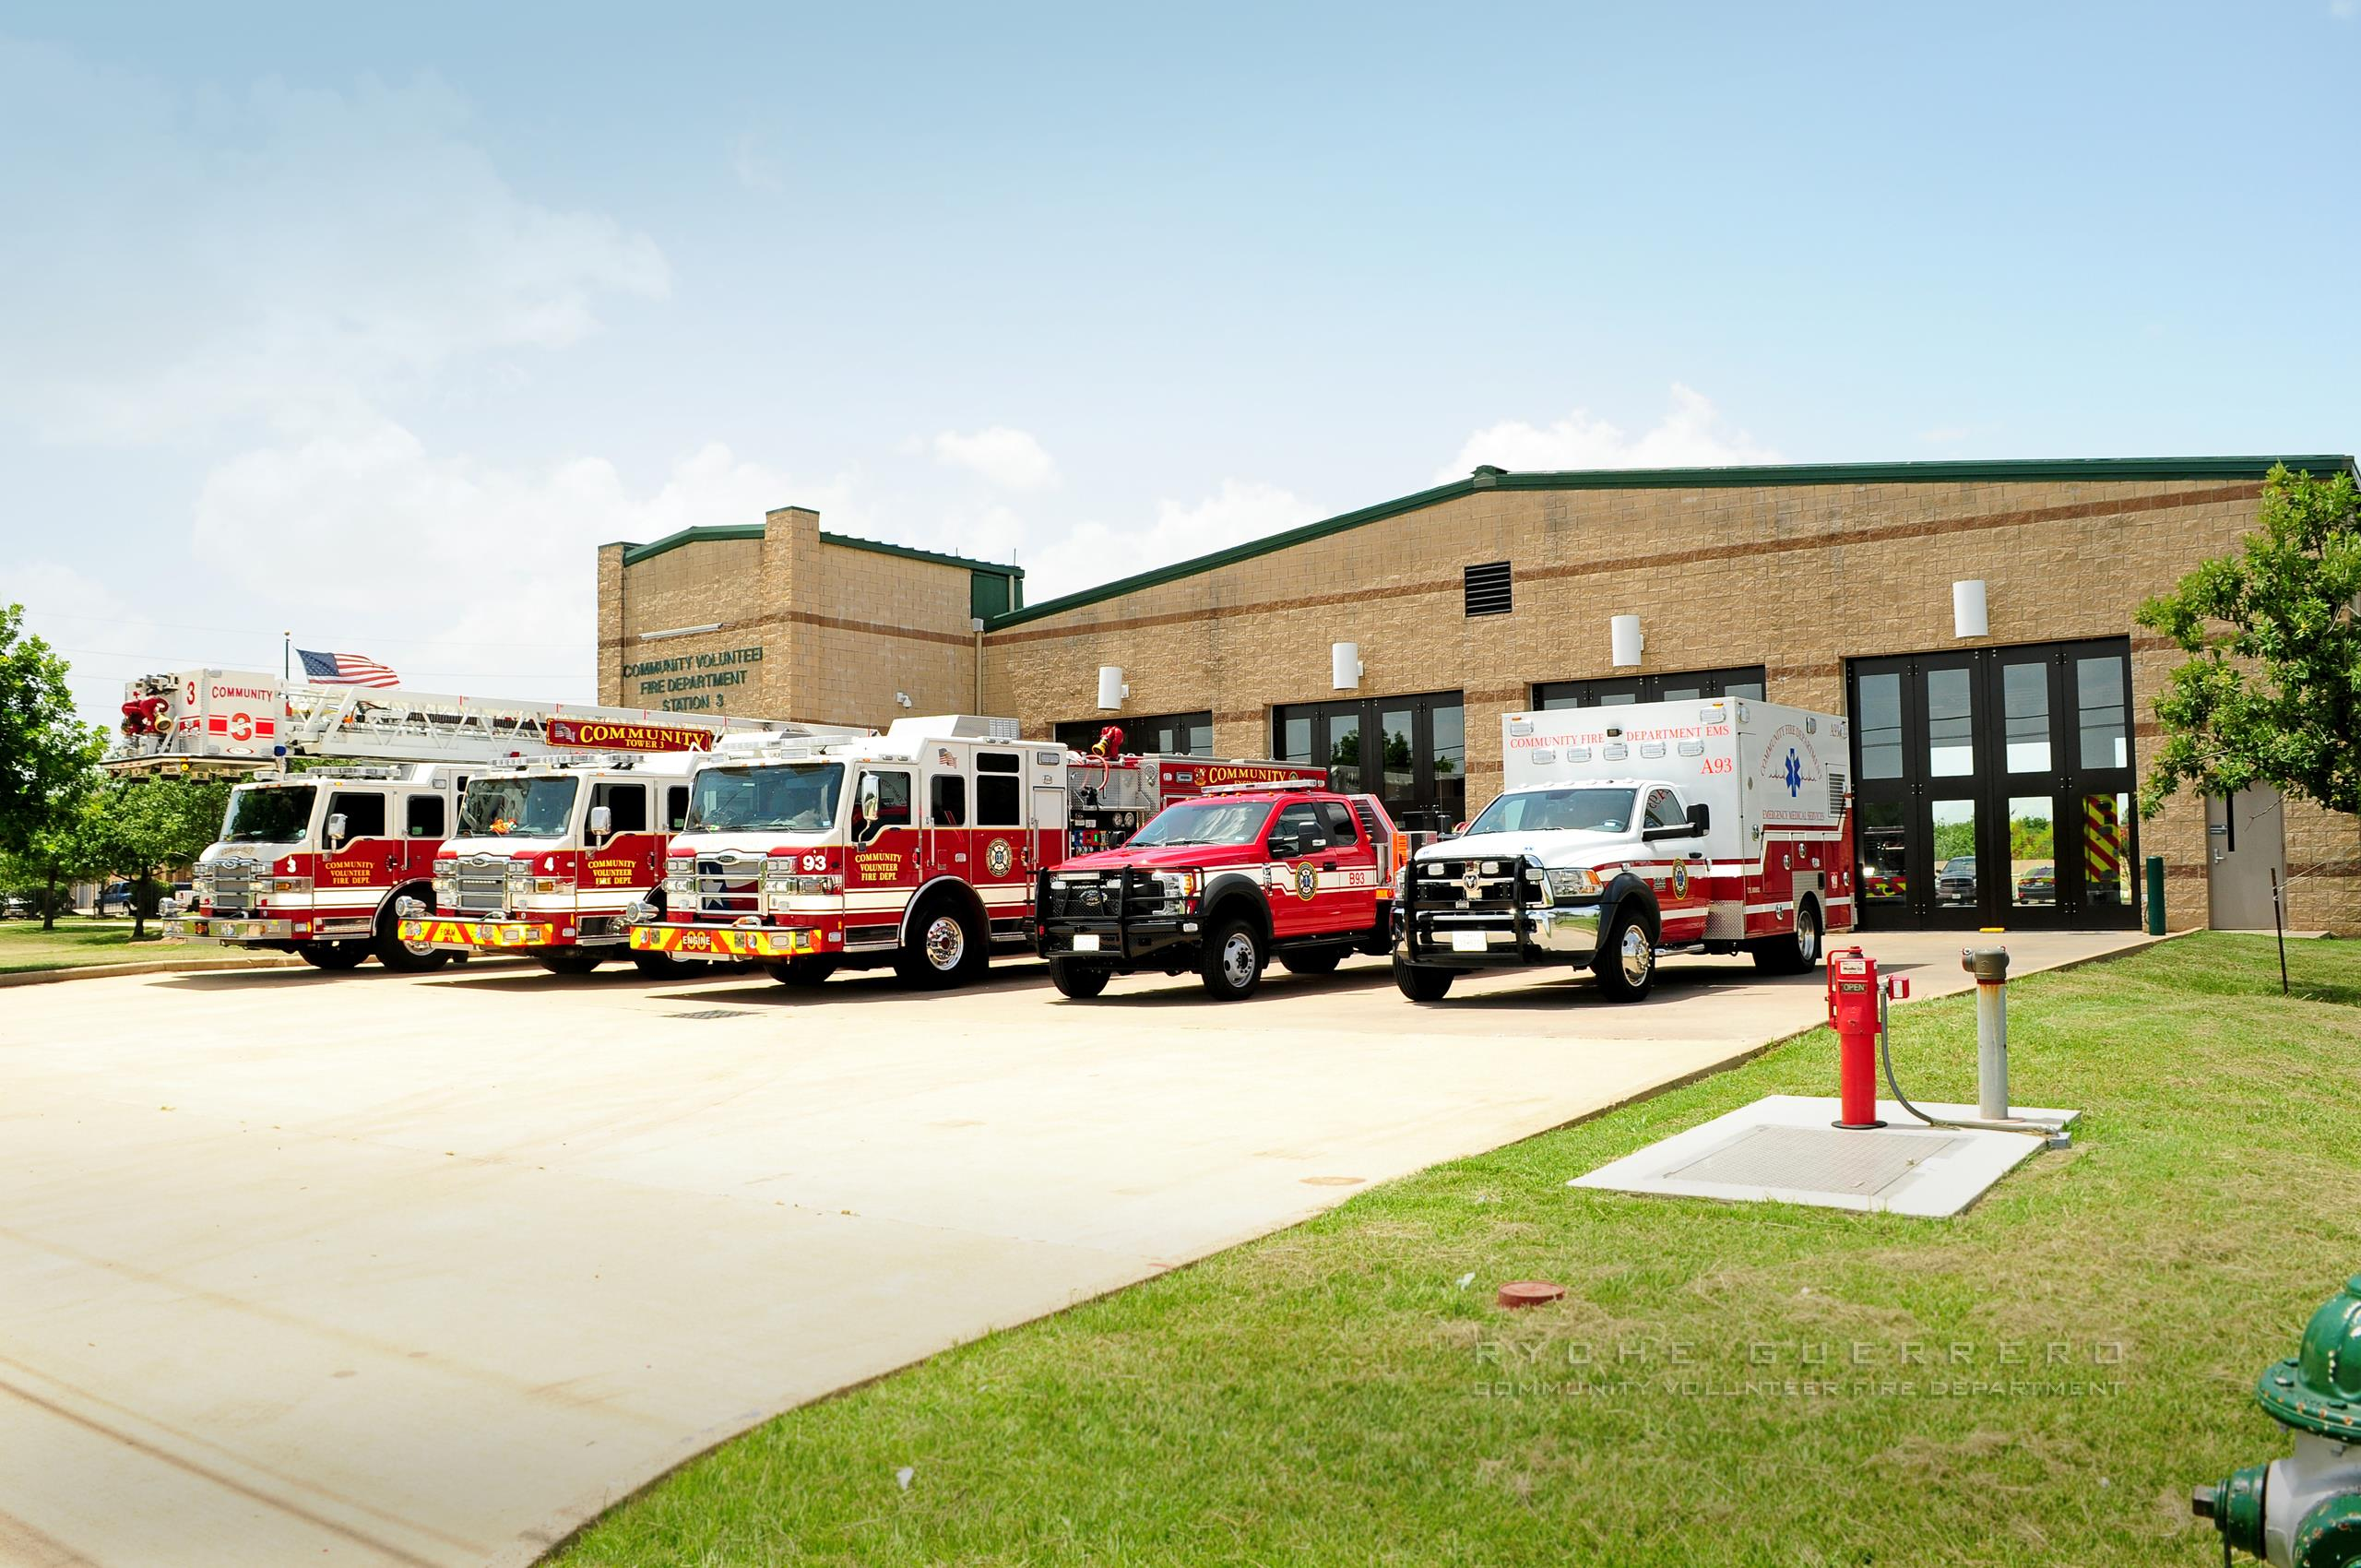 Harris Fort Bend Emergency Services District #100 Station 3